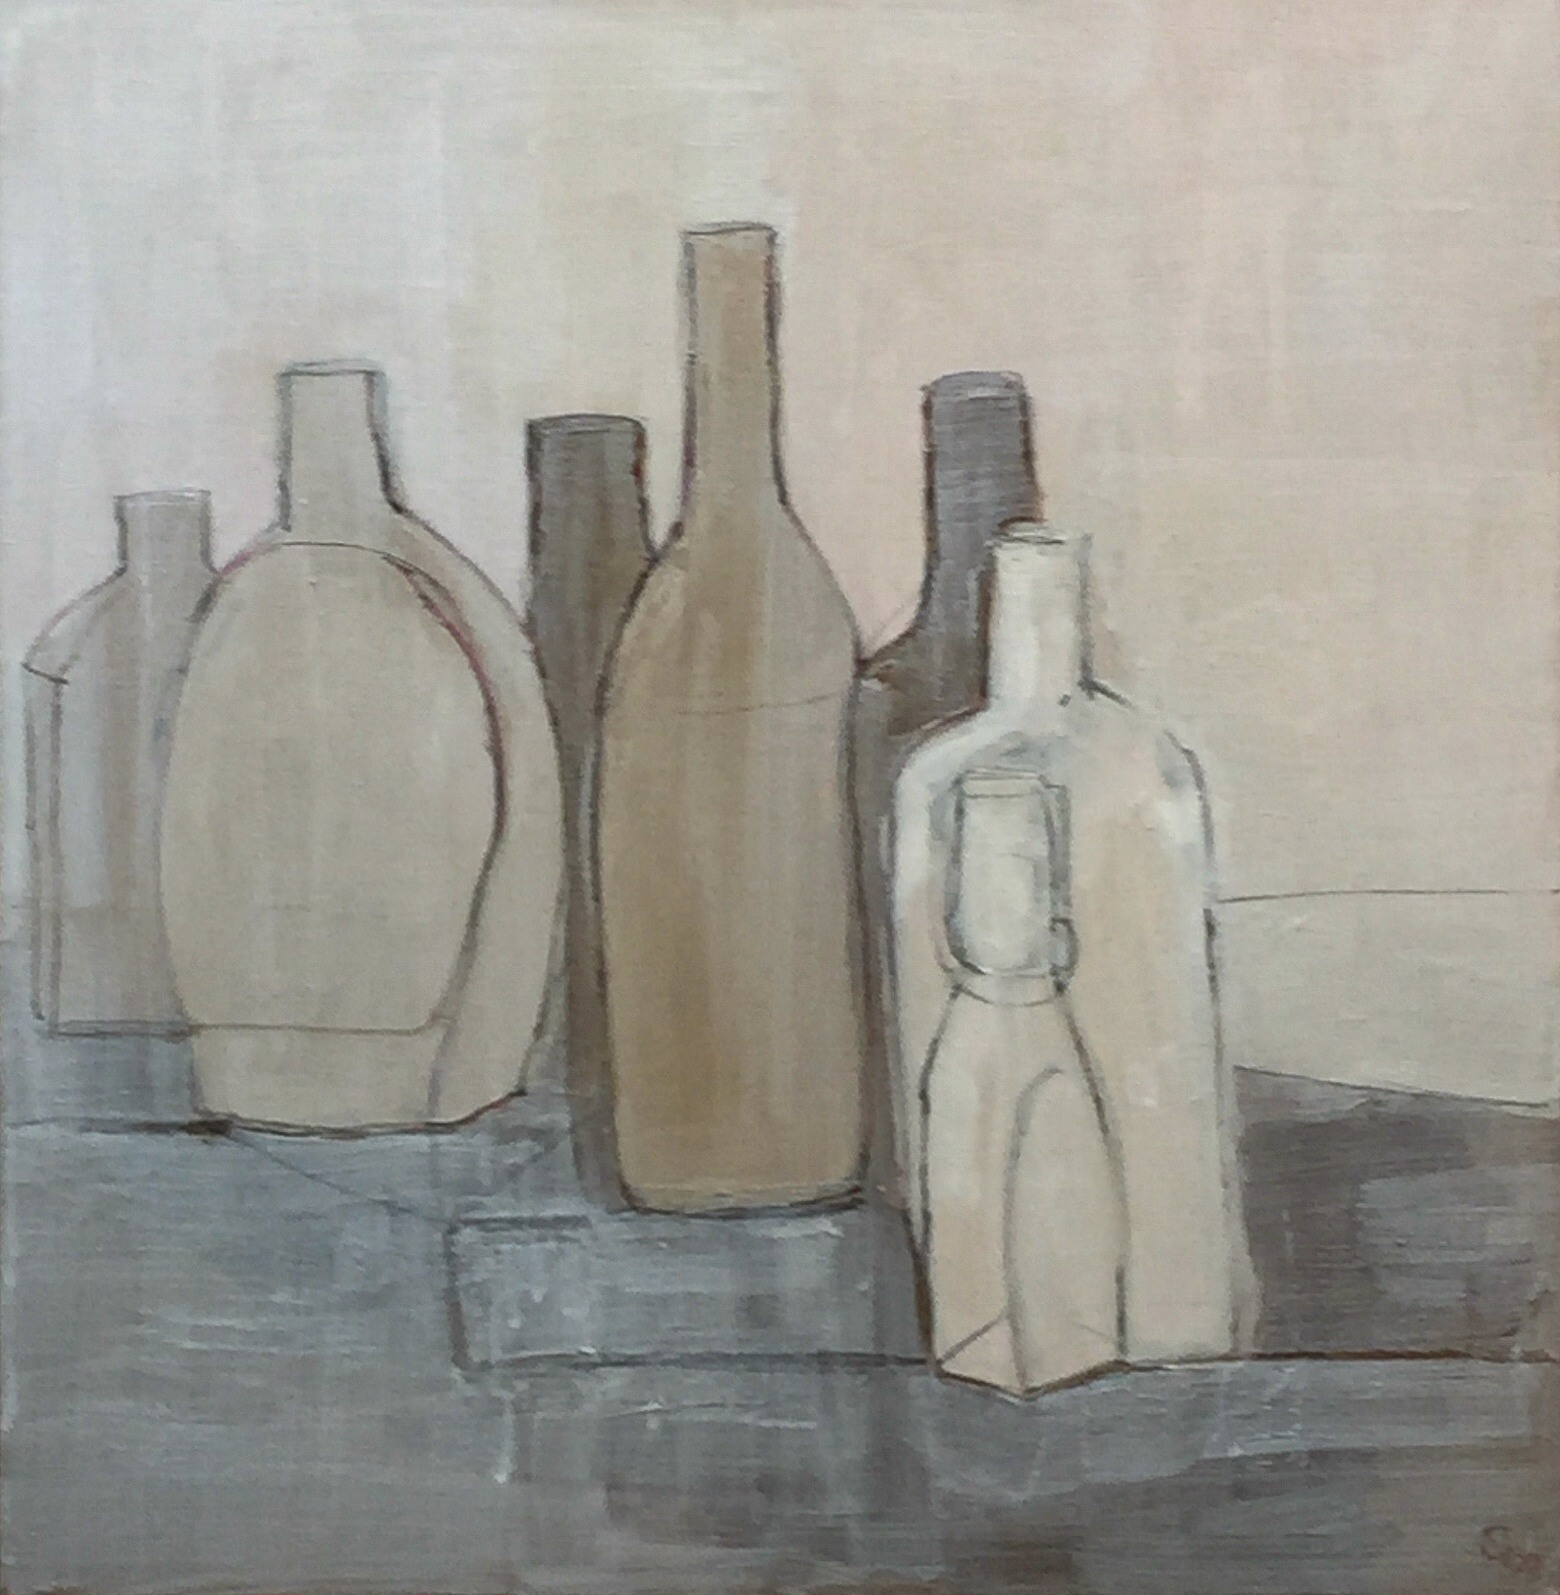 Nicole George   Bottles on Tabletop, Study    Mixed media on paper